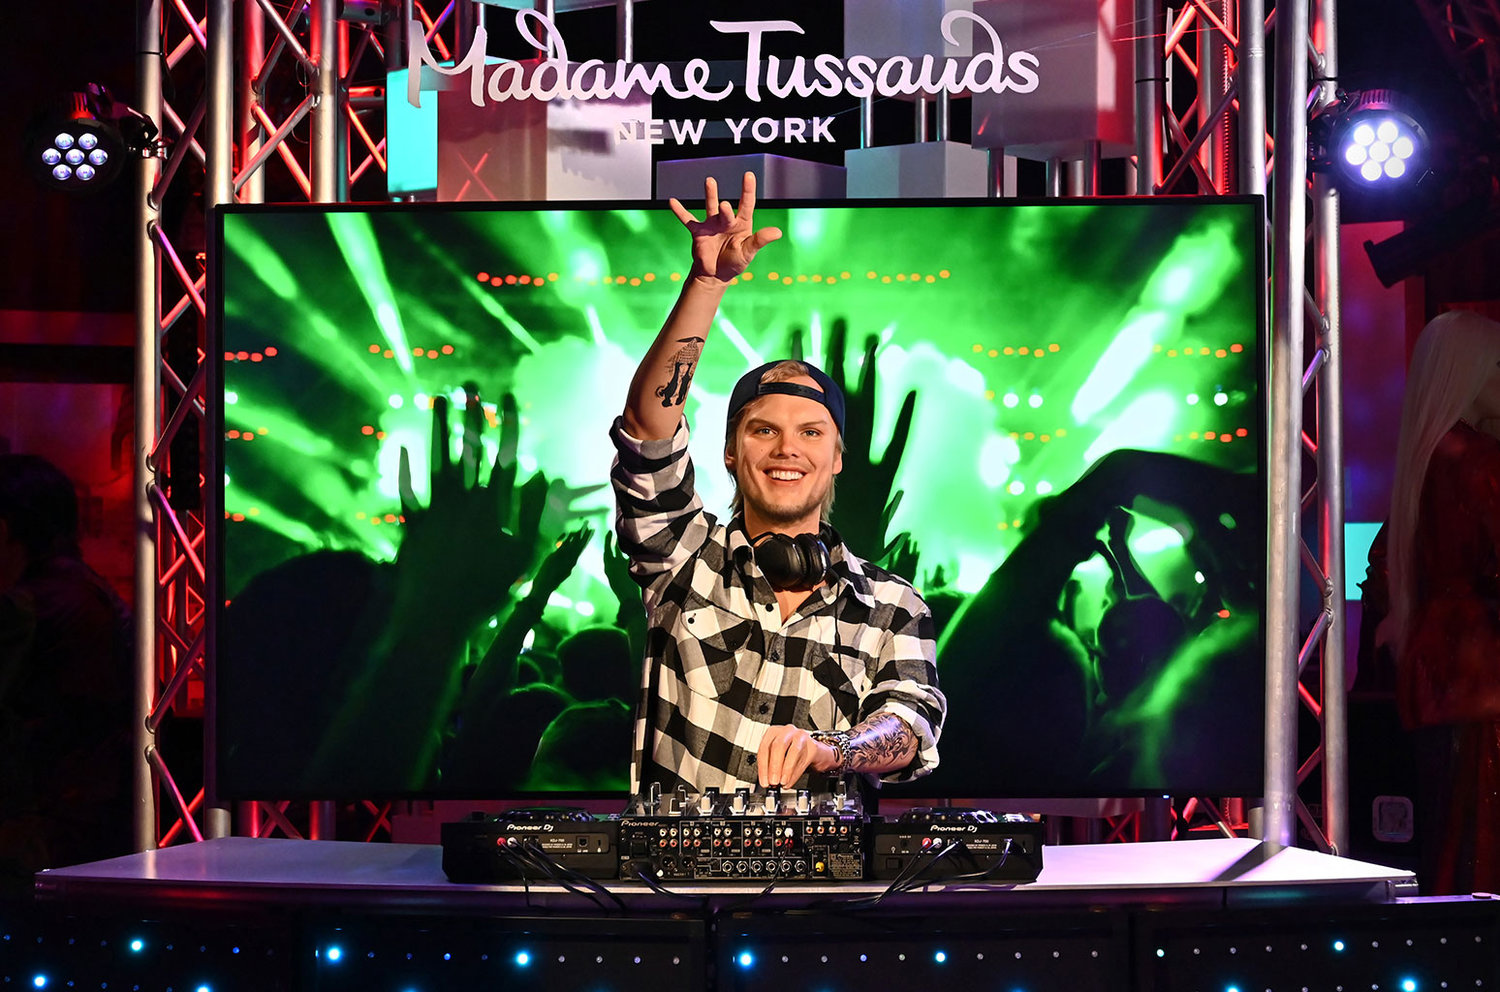 Avicii Receives Wax Figure At Madame Tussauds NY